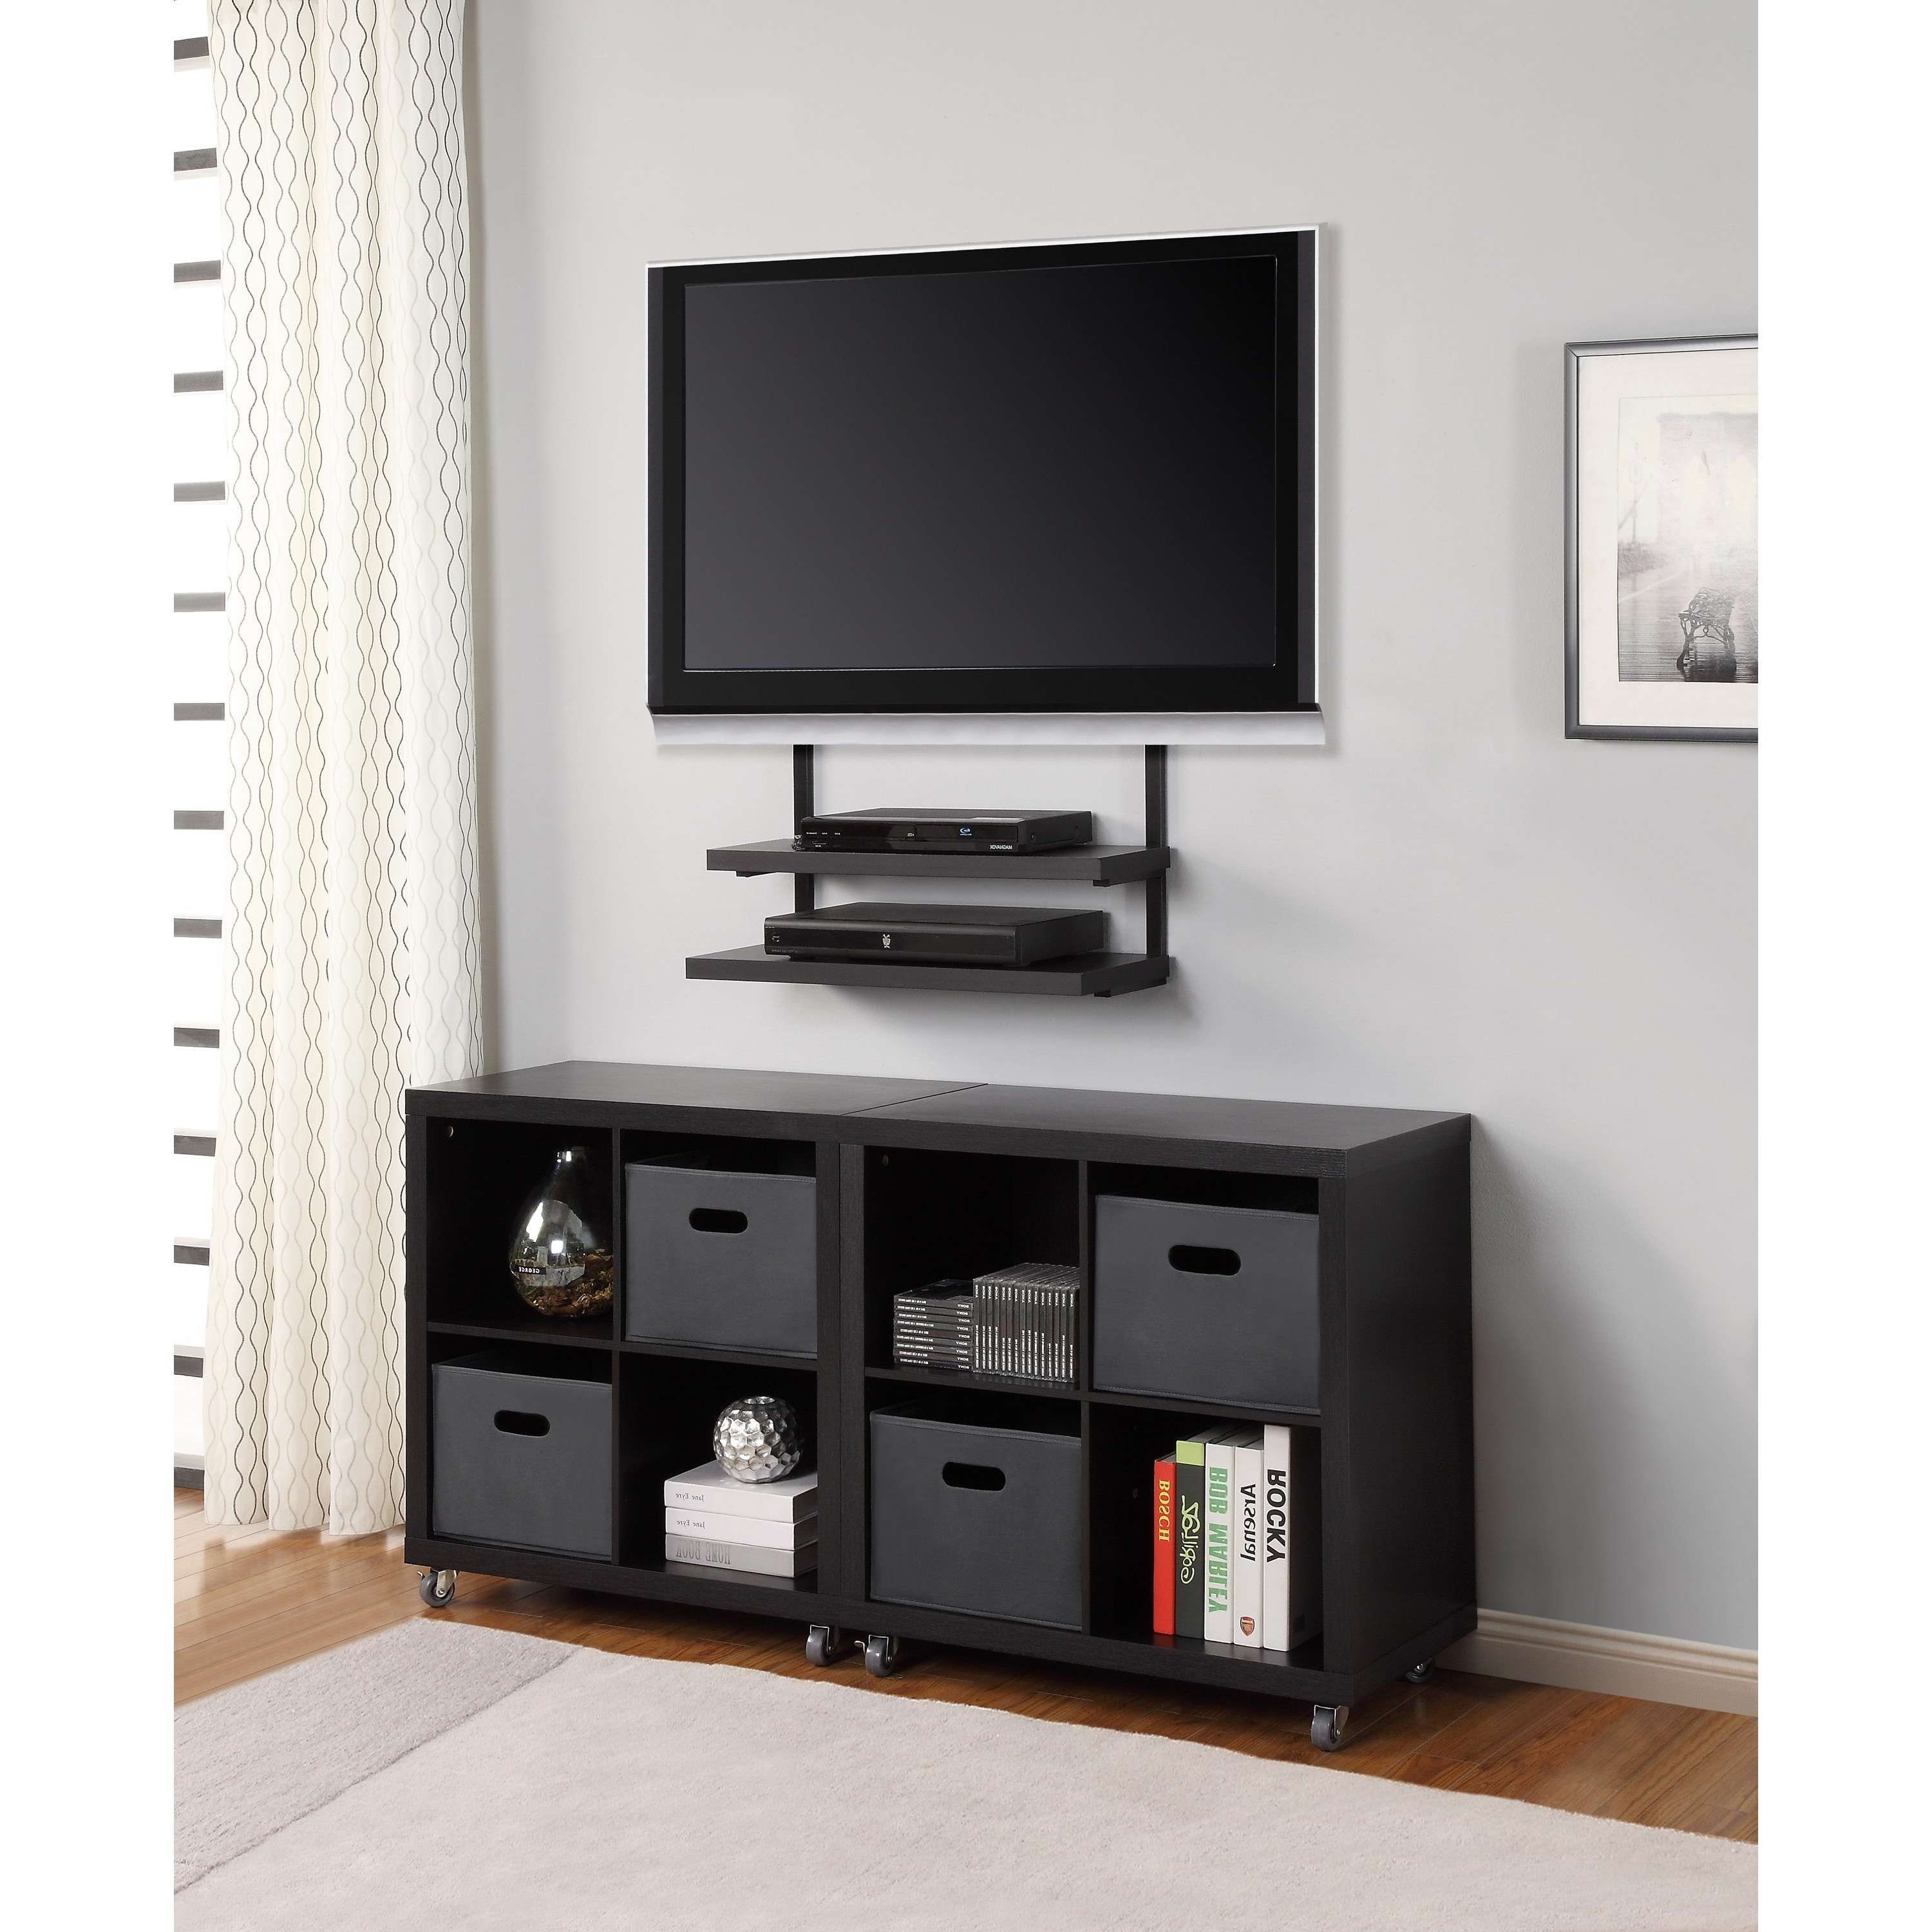 Unique Tv Stand Ideas Small Corner Awesome Images About Trends And Regarding Unique Tv Stands (Gallery 17 of 20)